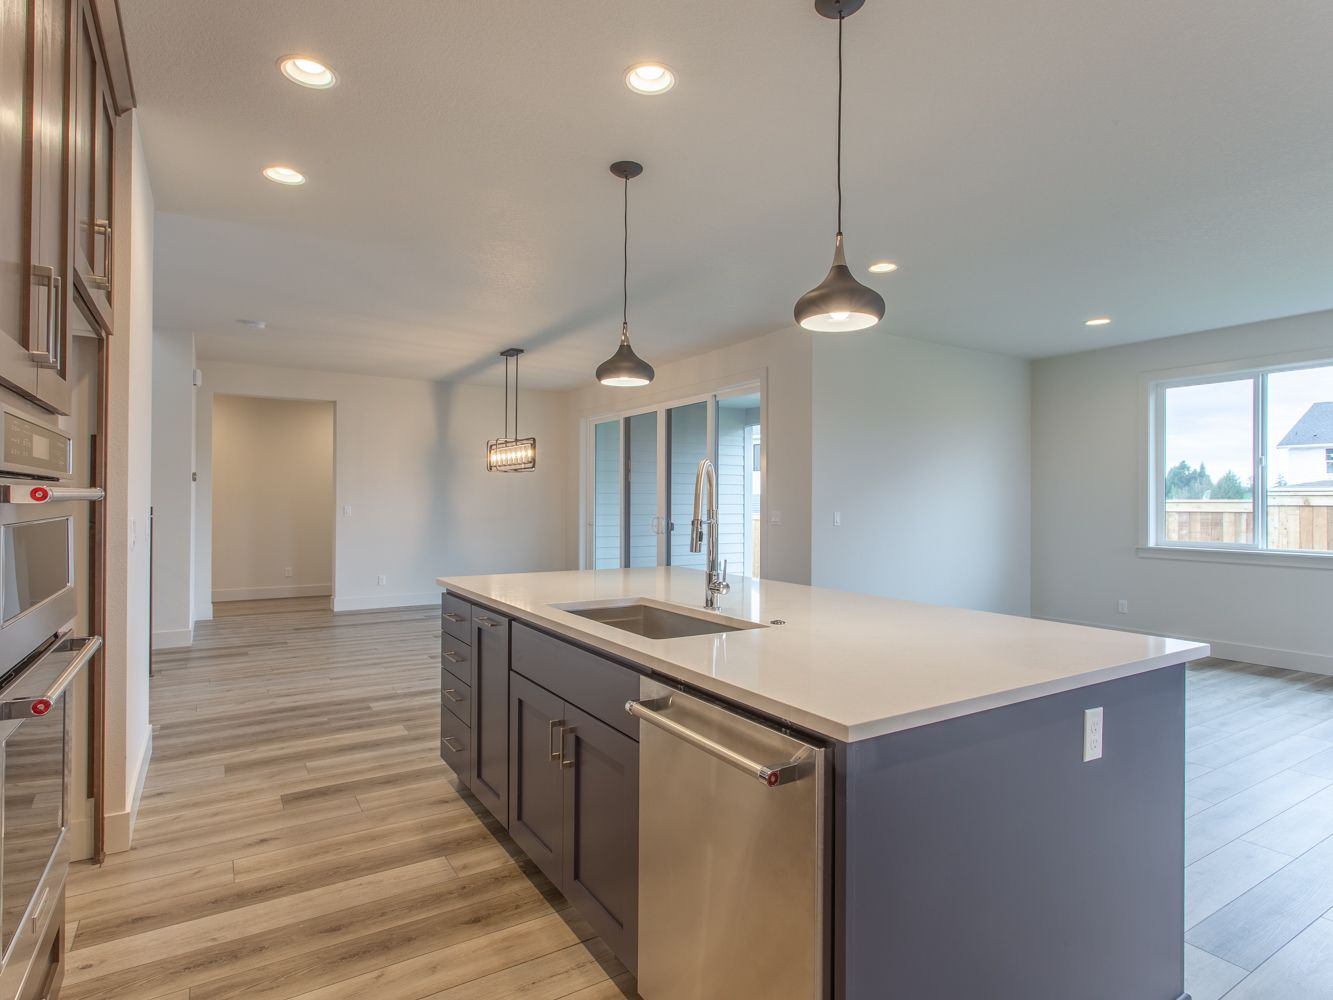 Kitchen featured in the 27611 SW Marigold Terr By Stone Bridge Homes NW in Portland-Vancouver, OR